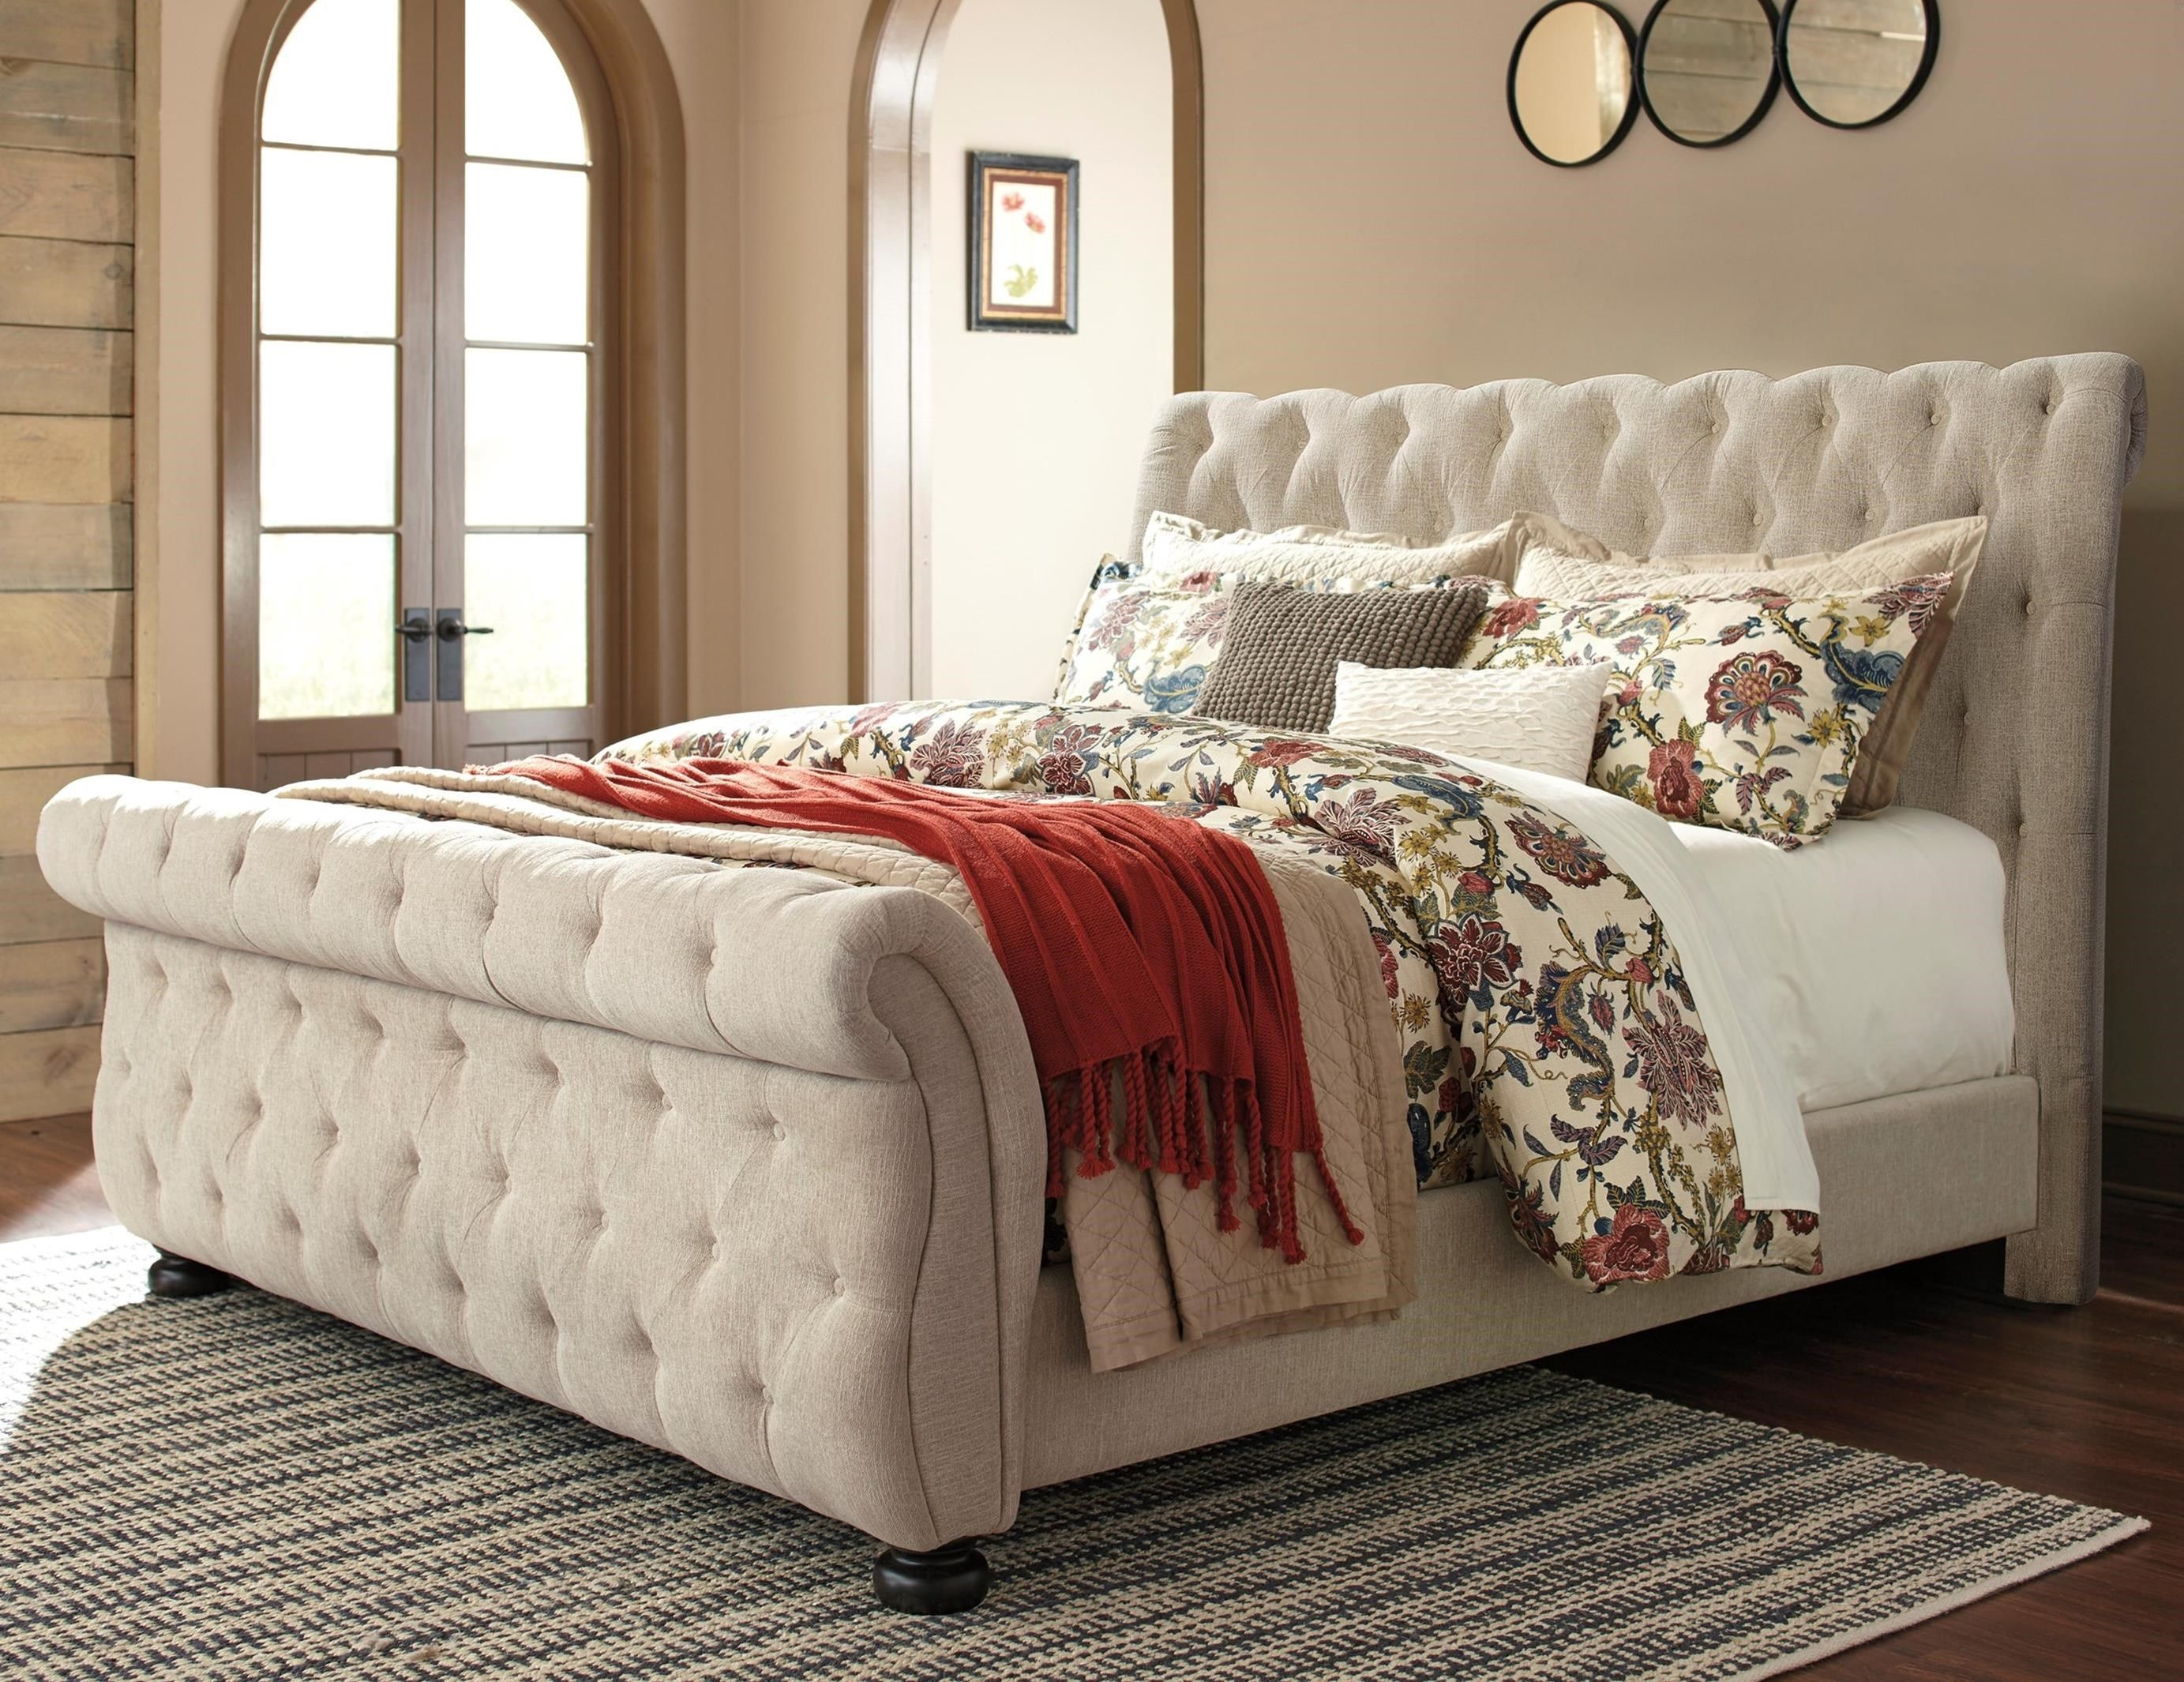 Tufted sleigh bed diy - Willenburg Queen Upholstered Sleigh Bed With Tufting By Signature Design By Ashley